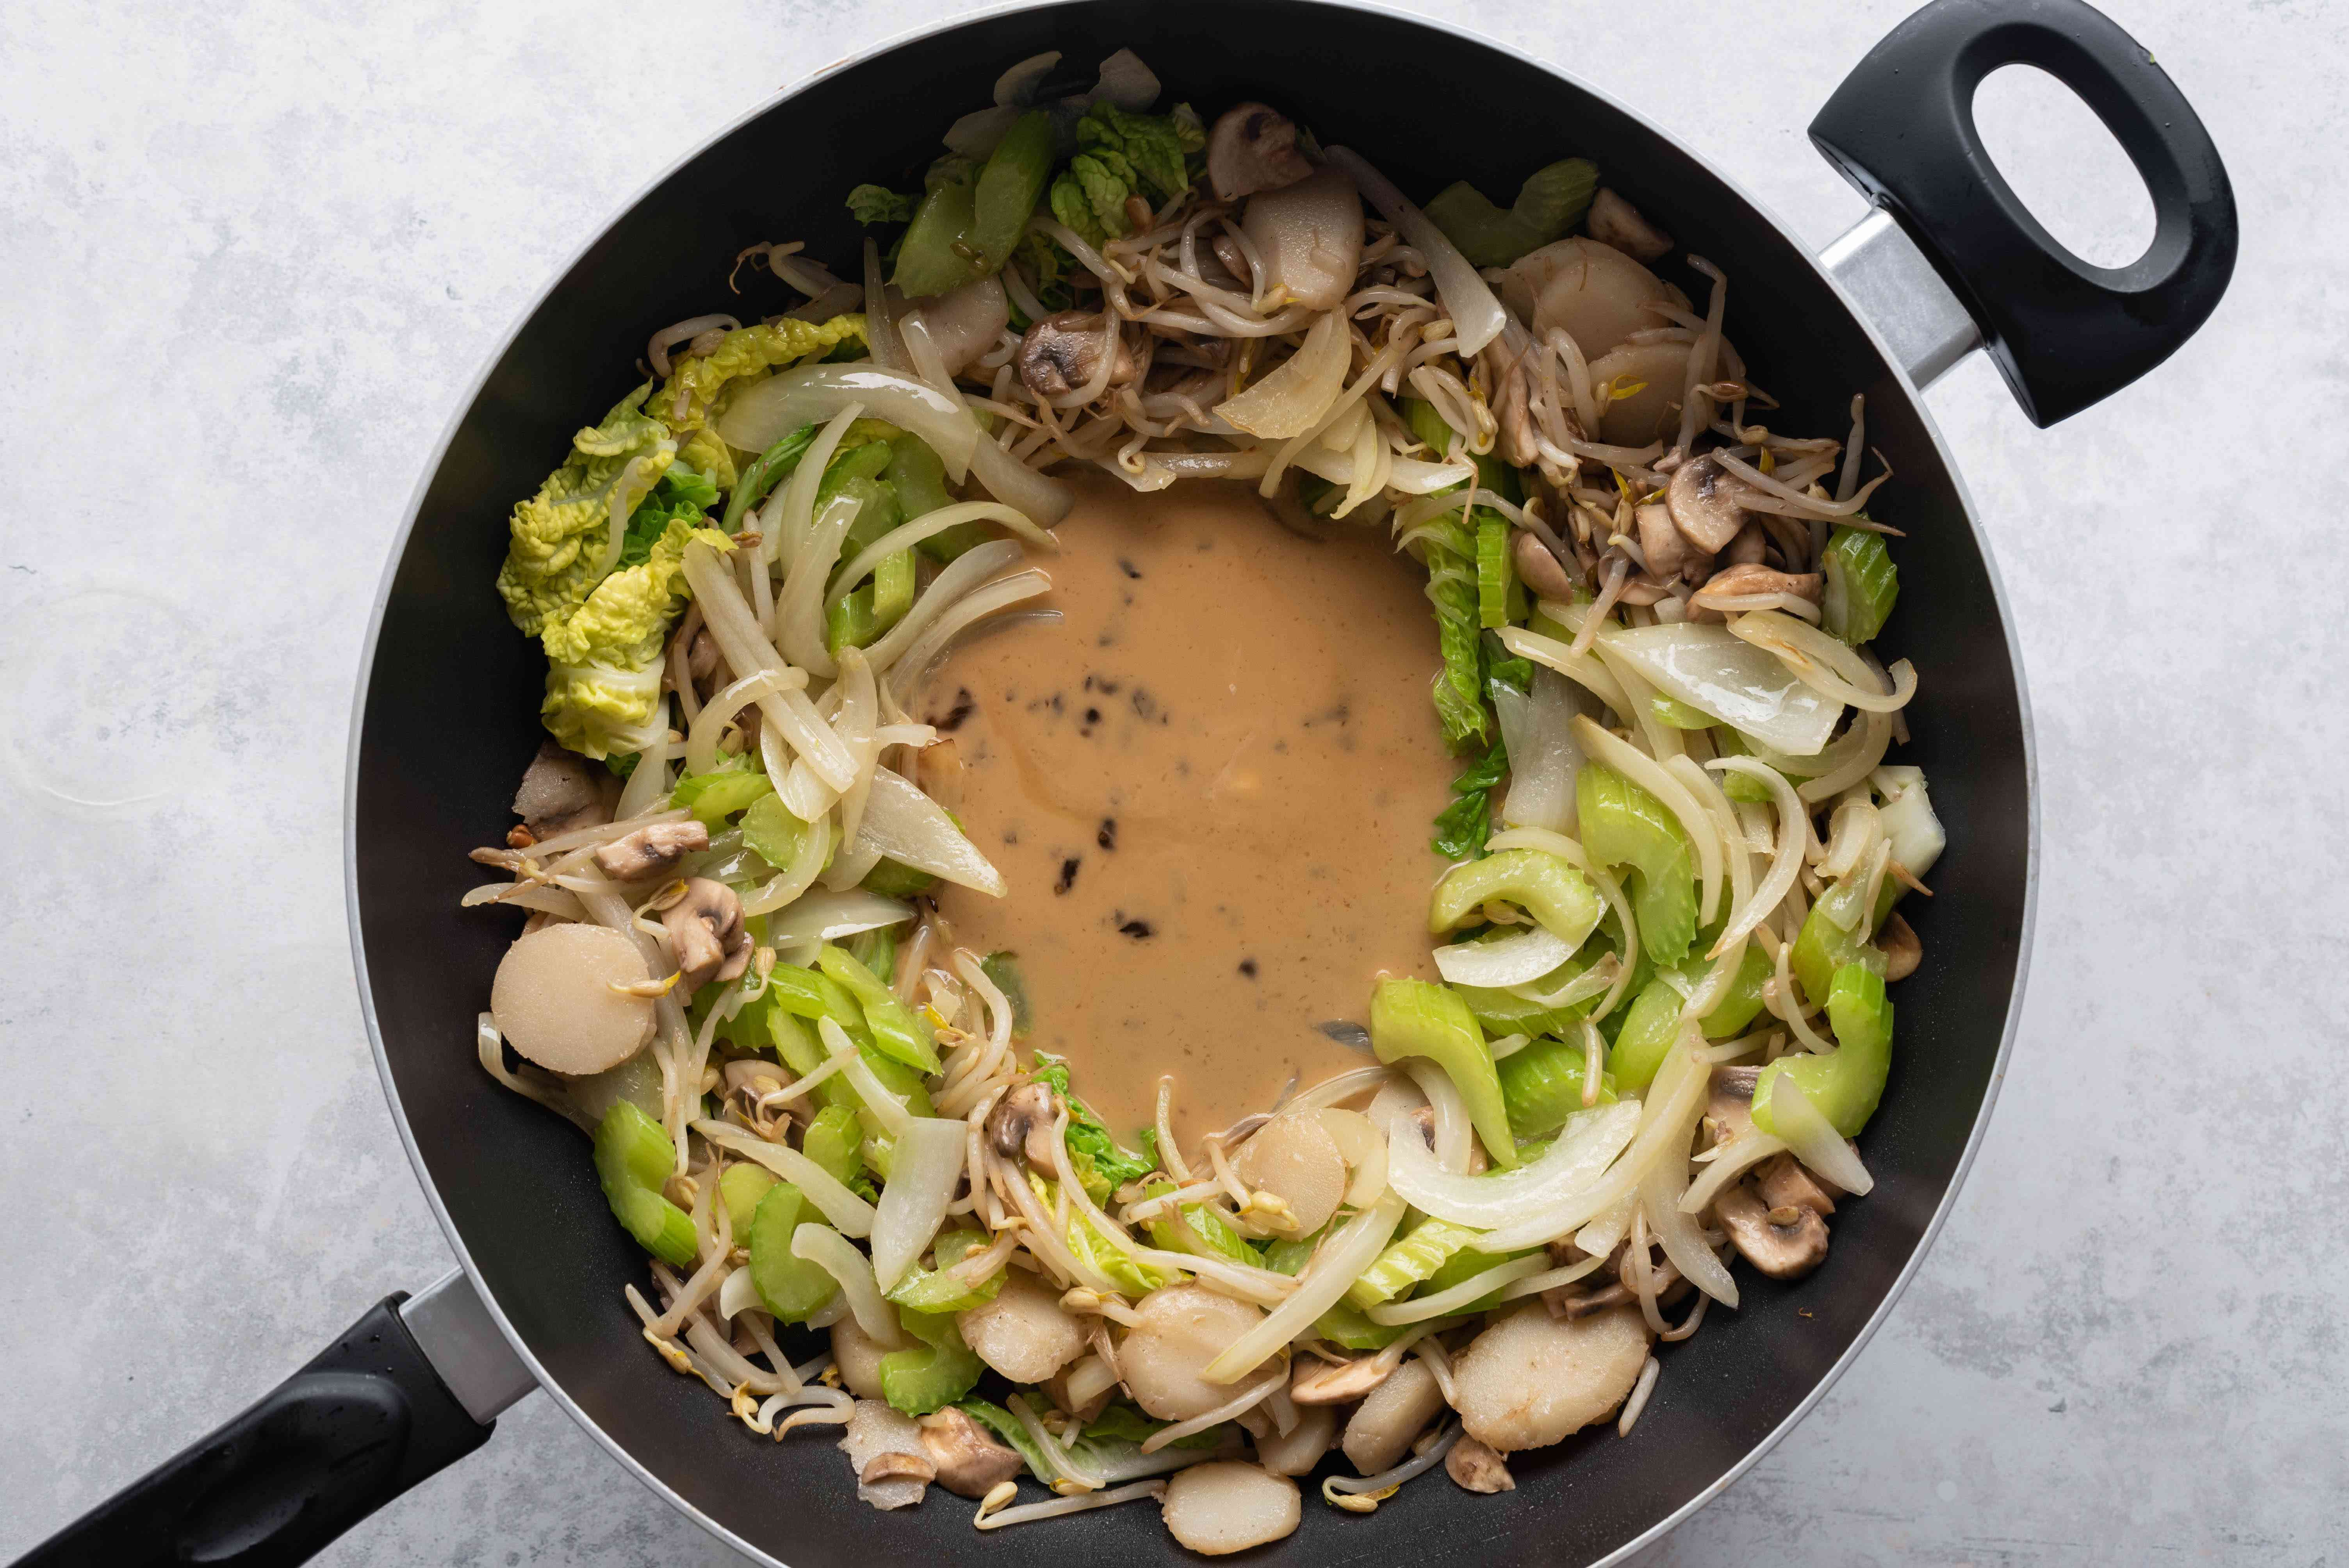 add sauce to the vegetables in the pan